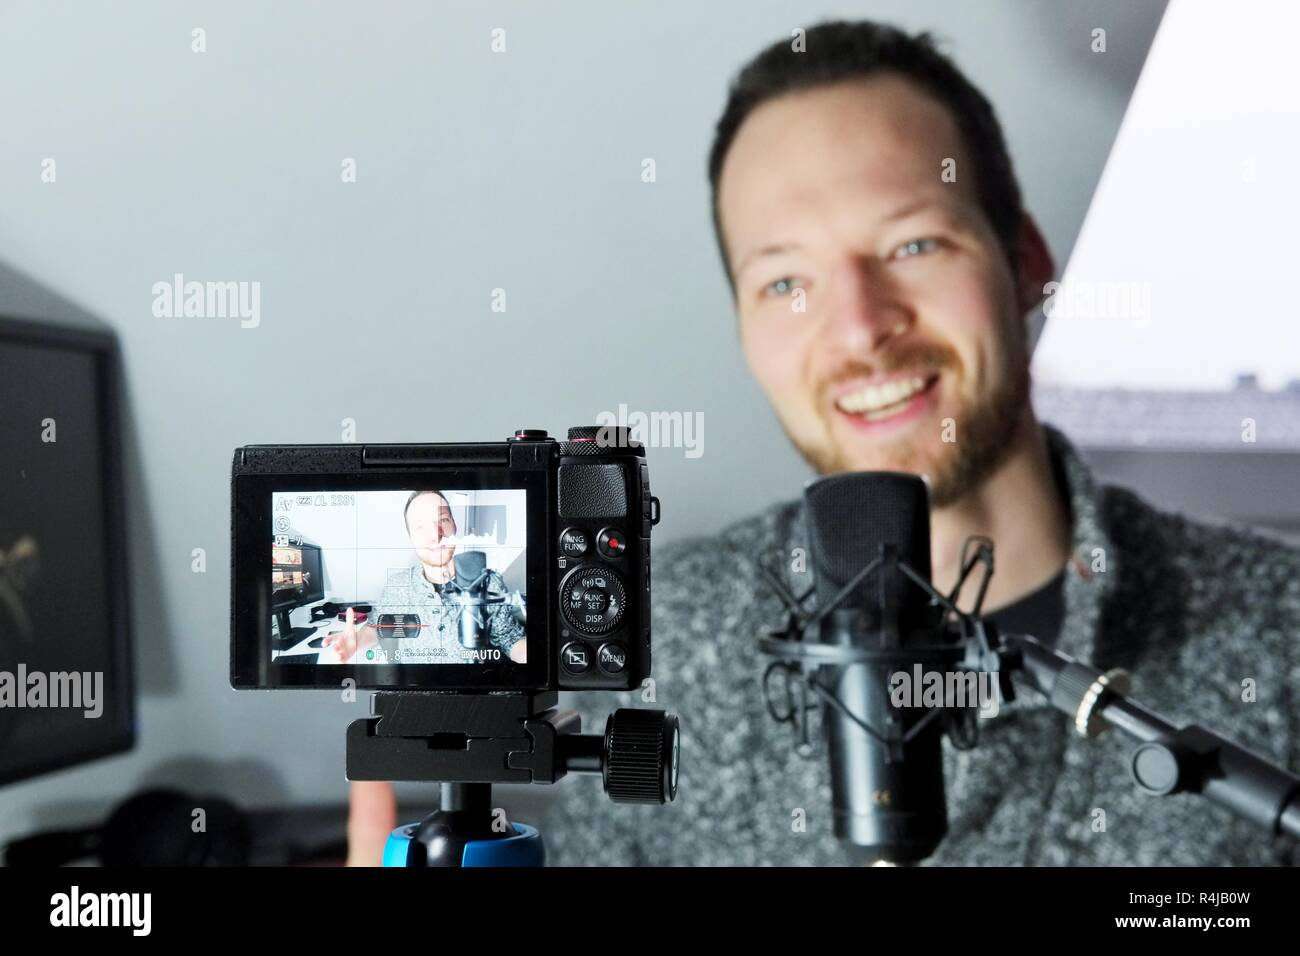 Camera display showing young male filming himself podcast content creator Stock Photo